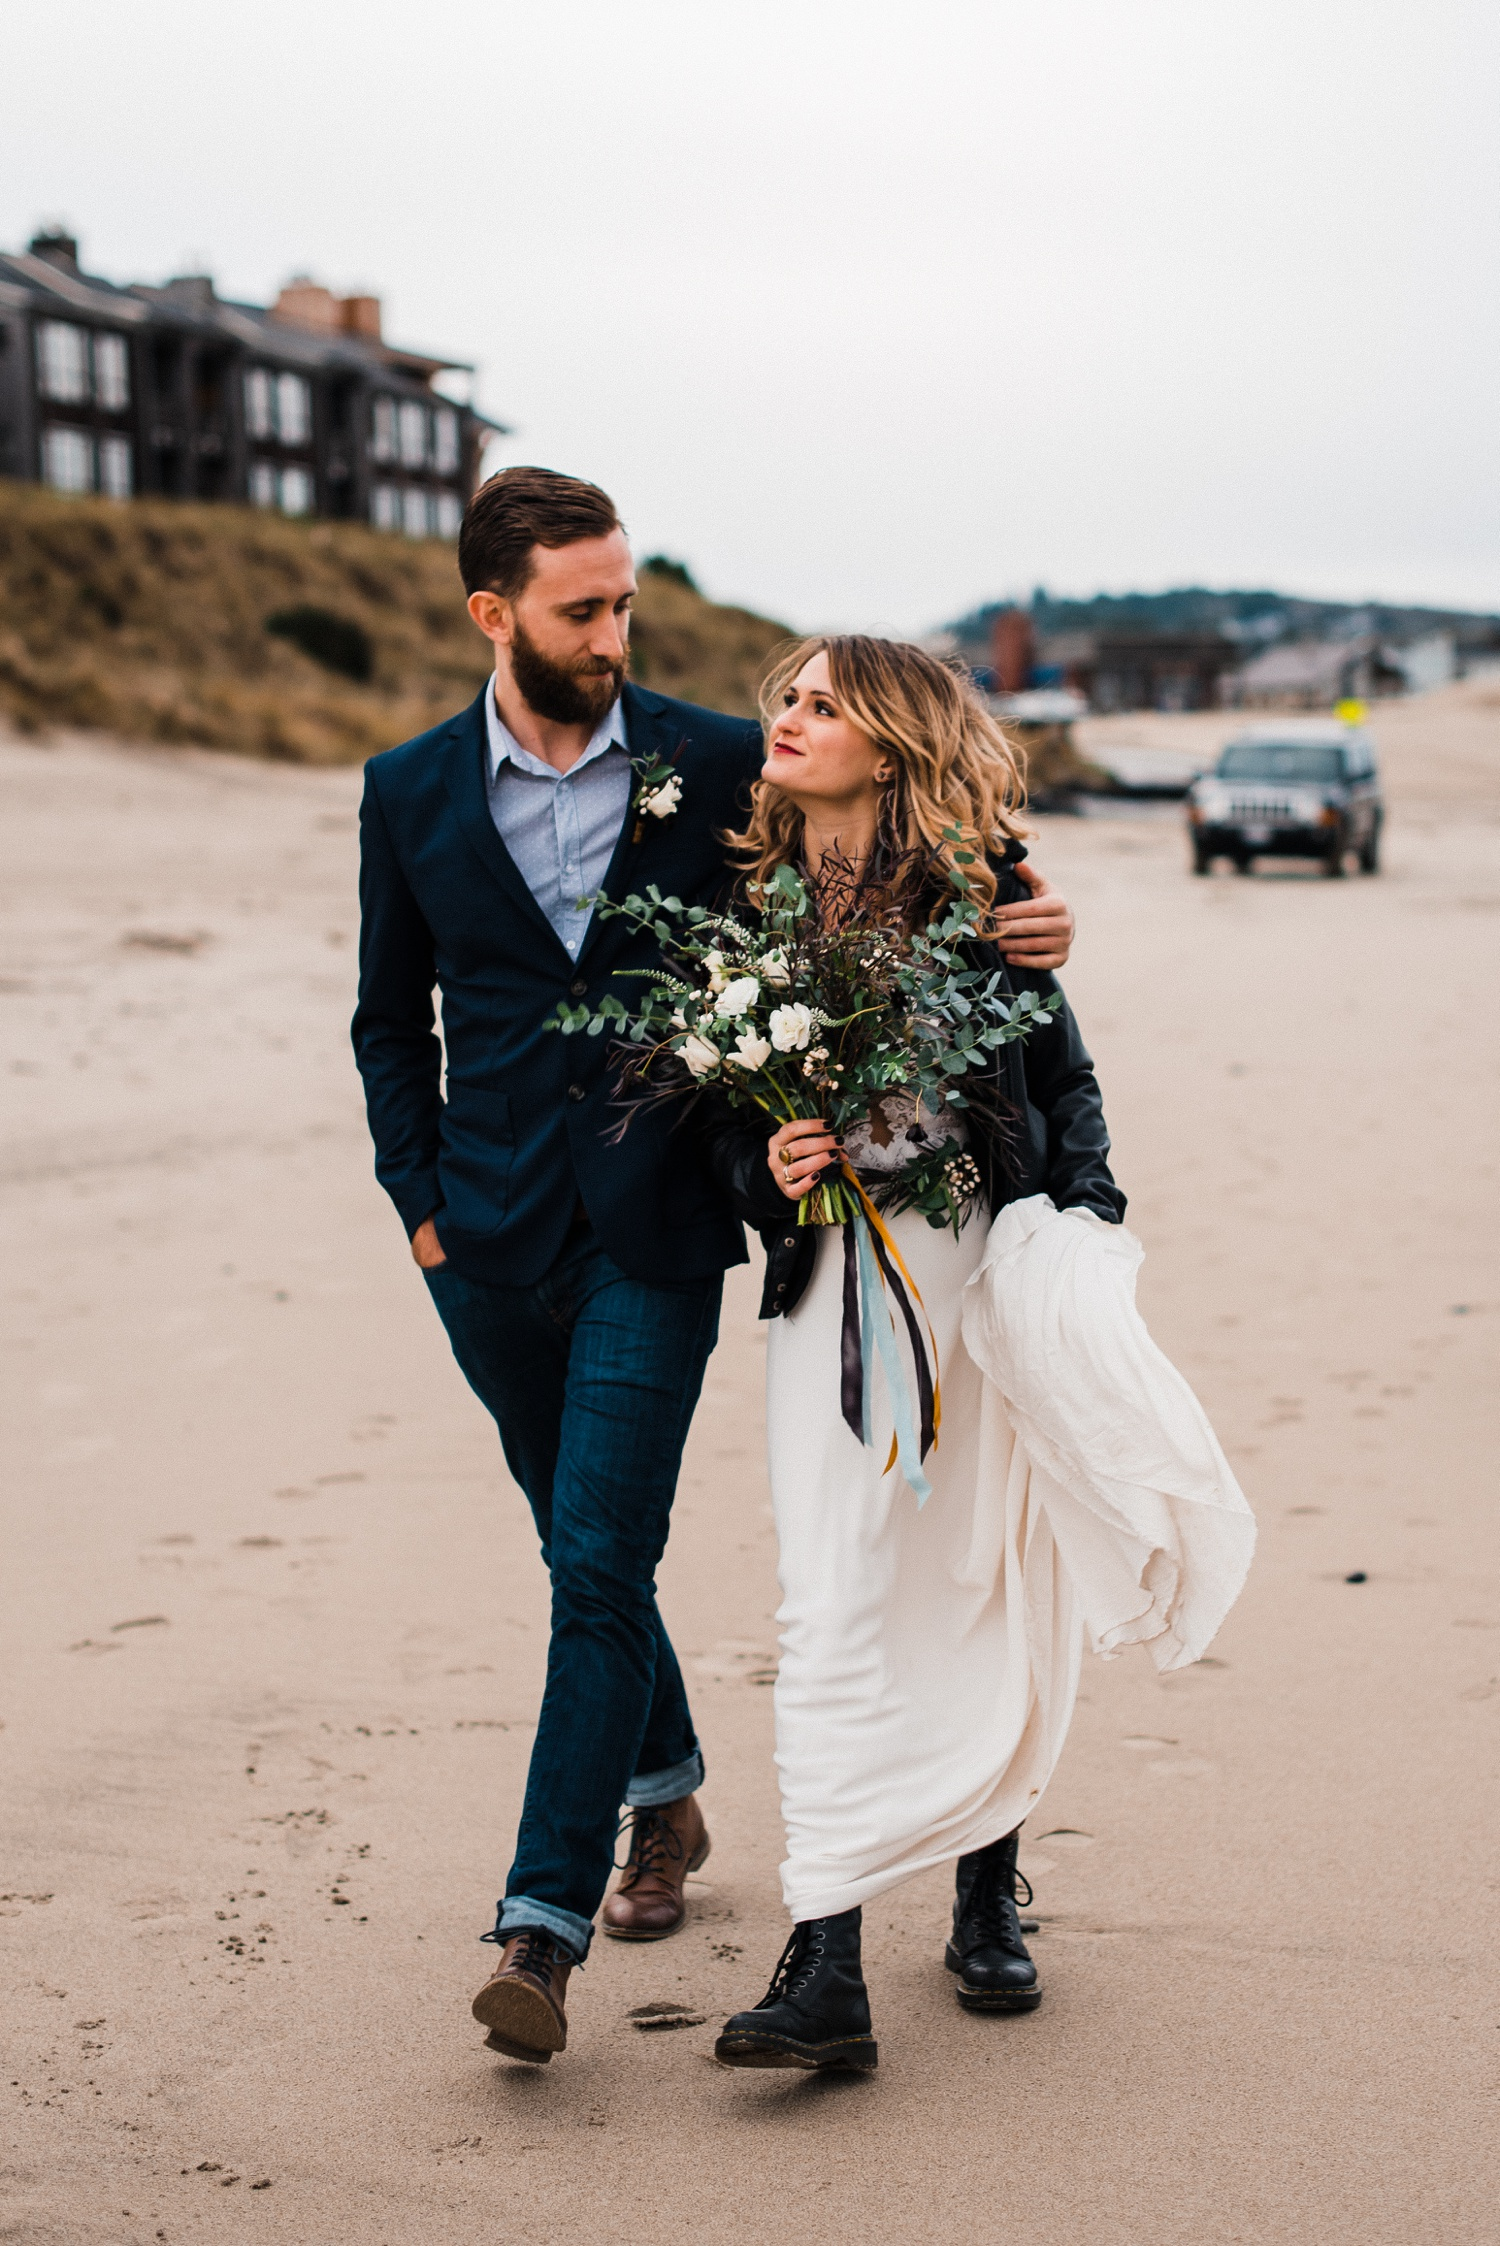 Oregon_Coast_Elopement_Wedding_The_Foxes_Photography_079-2.jpg